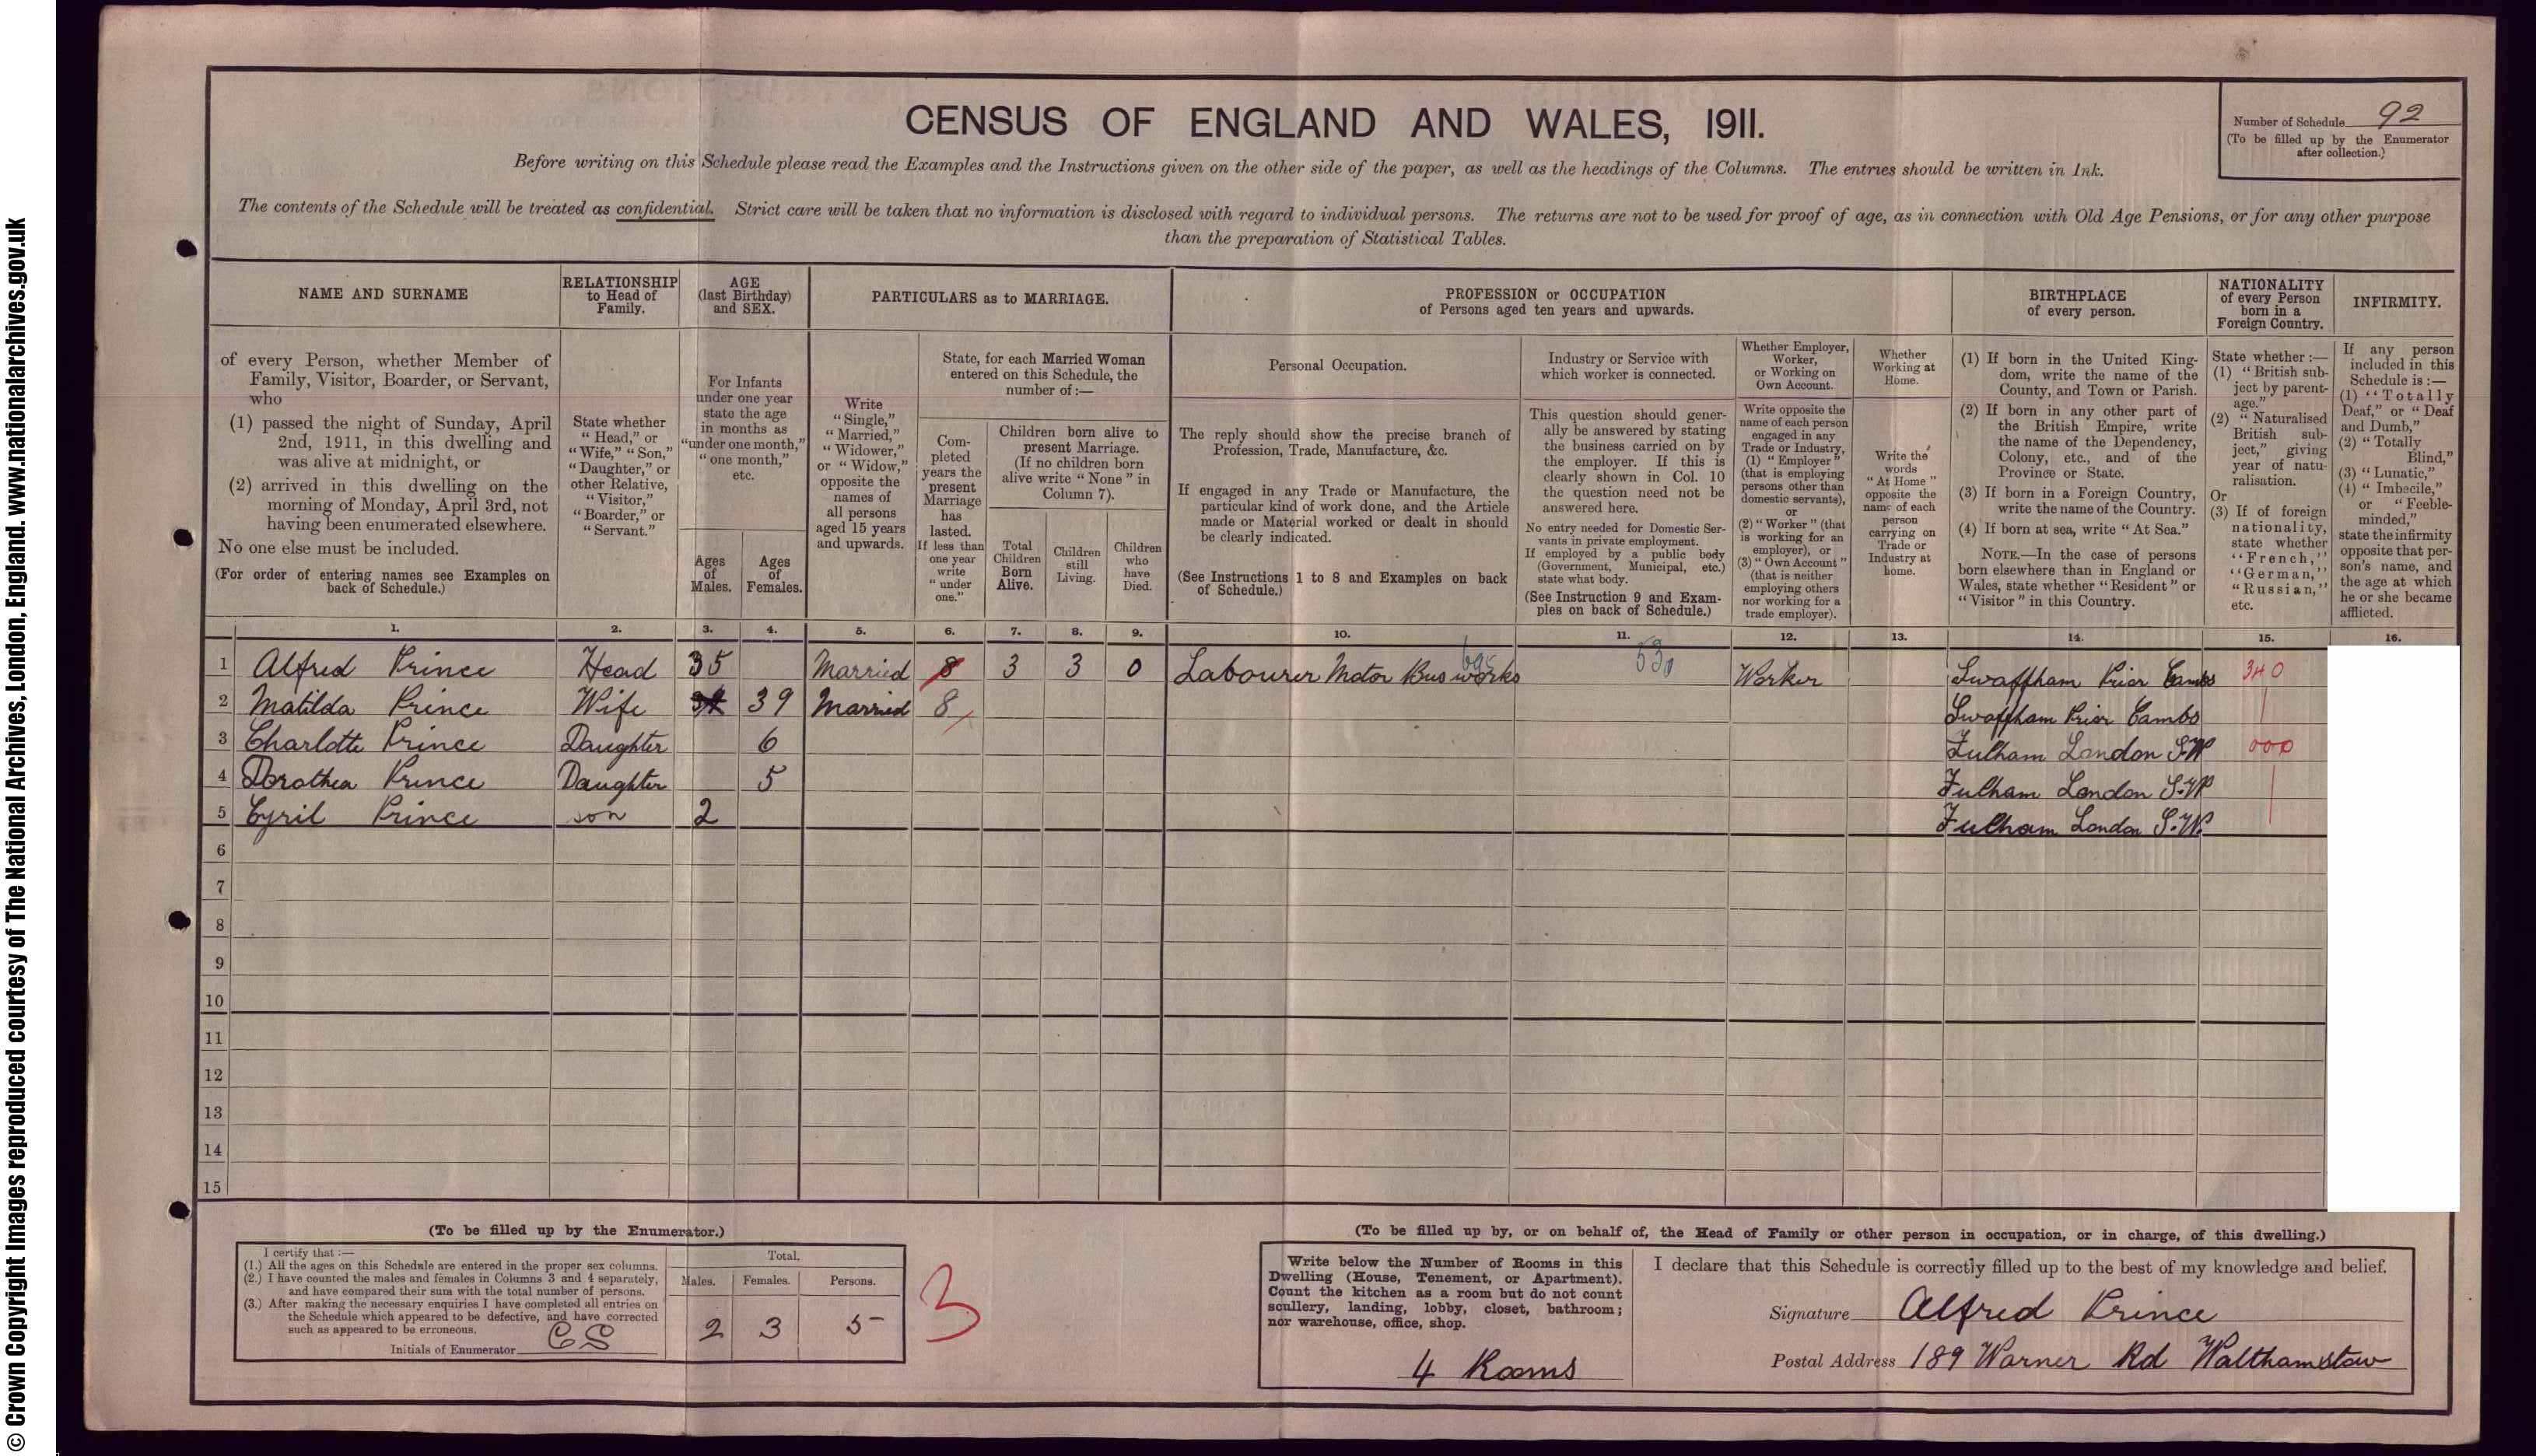 1911 England Census Record for Alfred Prince